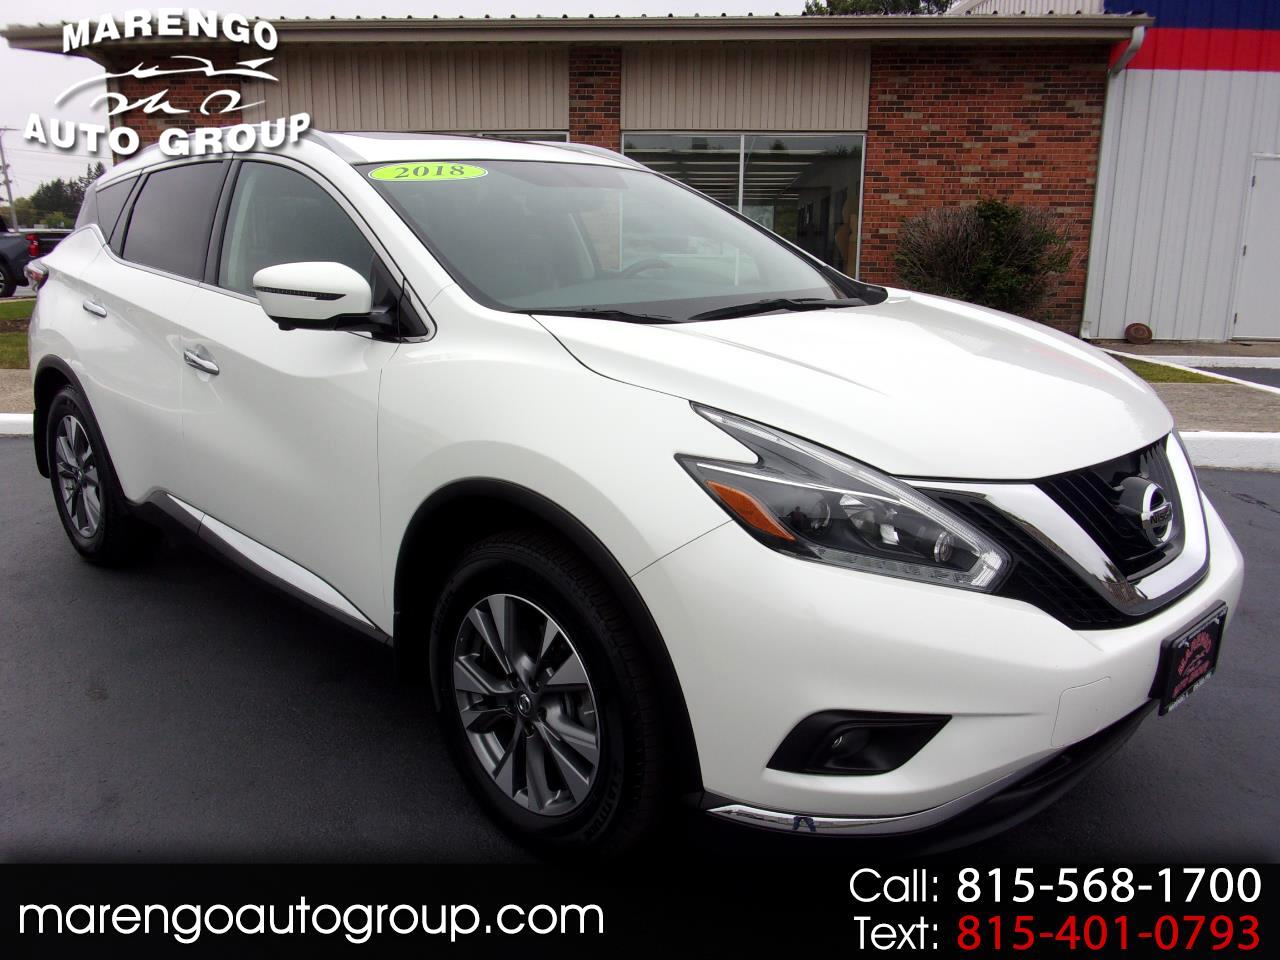 used 2018 Nissan Murano car, priced at $26,996